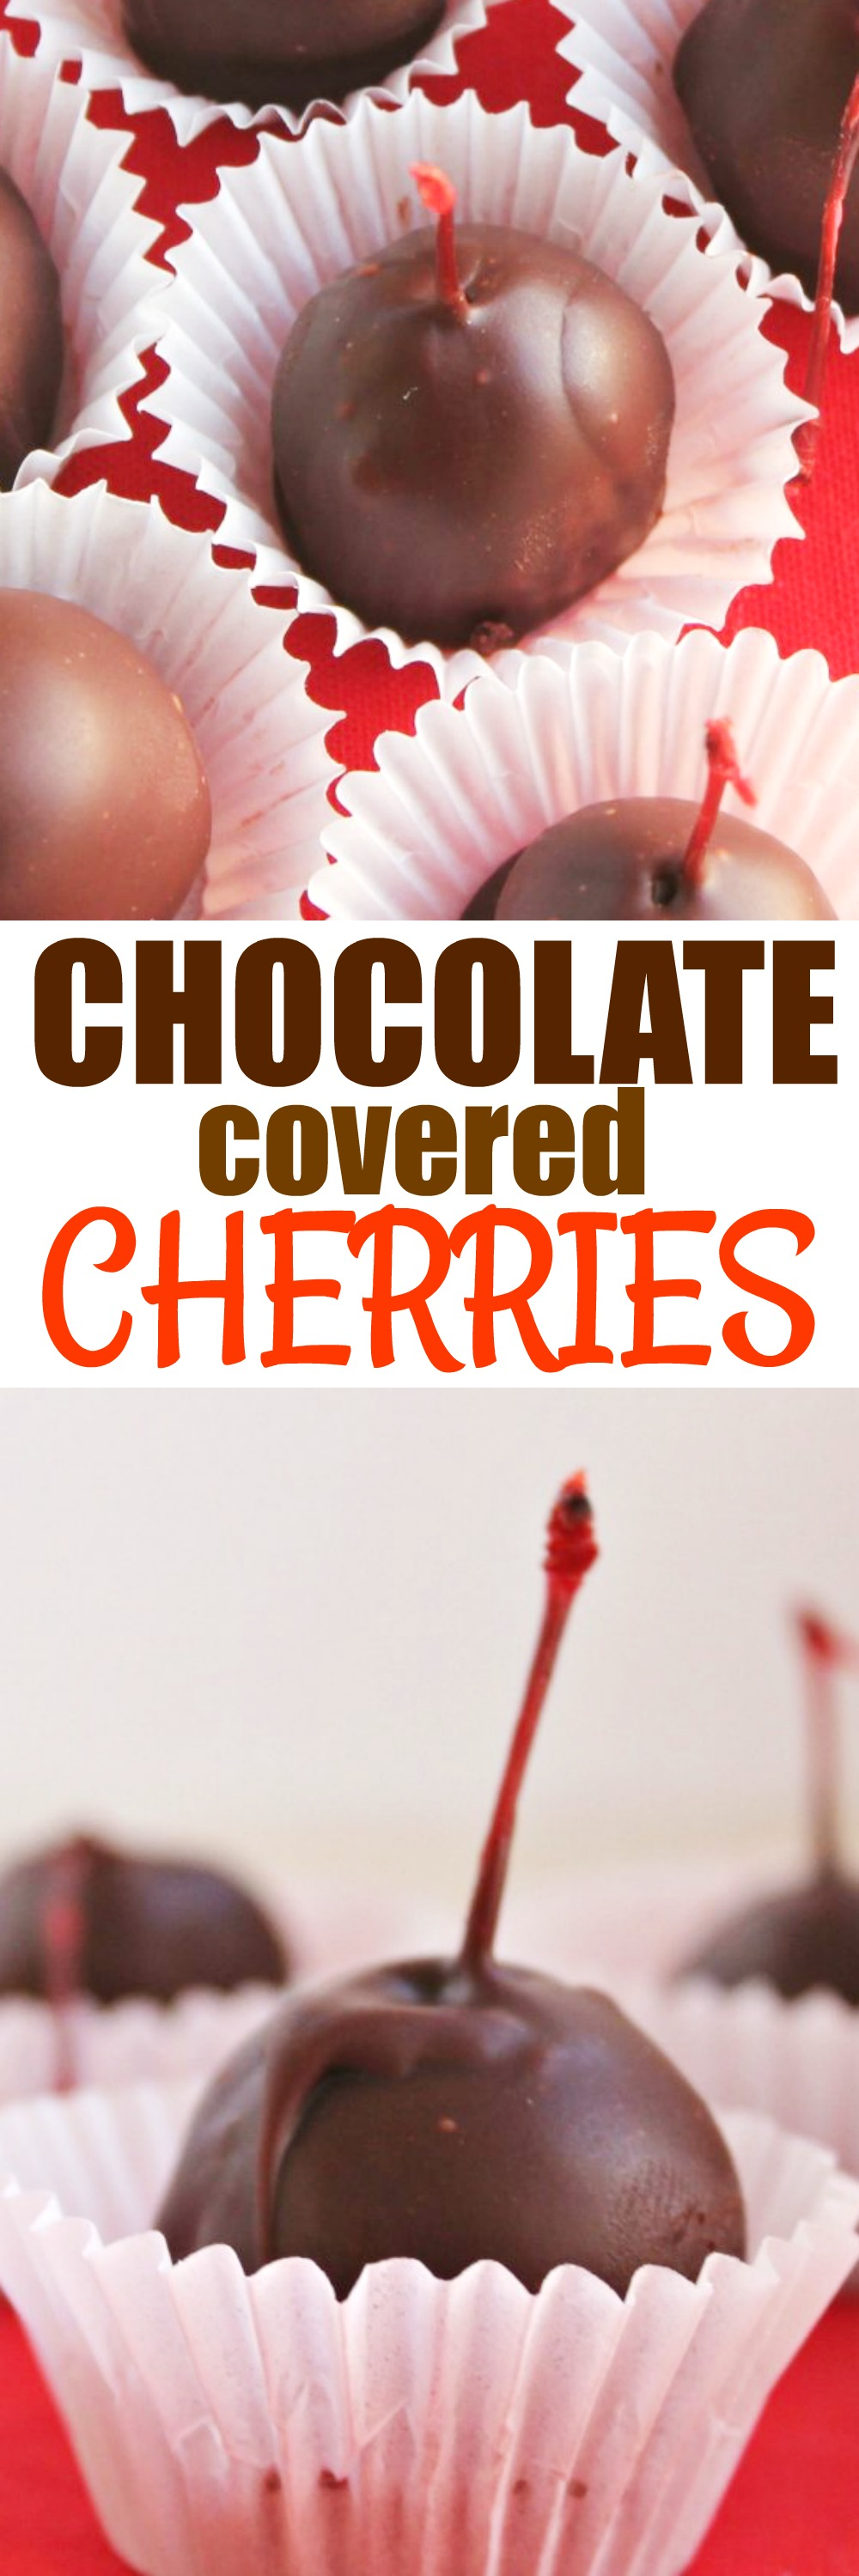 How to Make Chocolate Covered Cherries Recipe